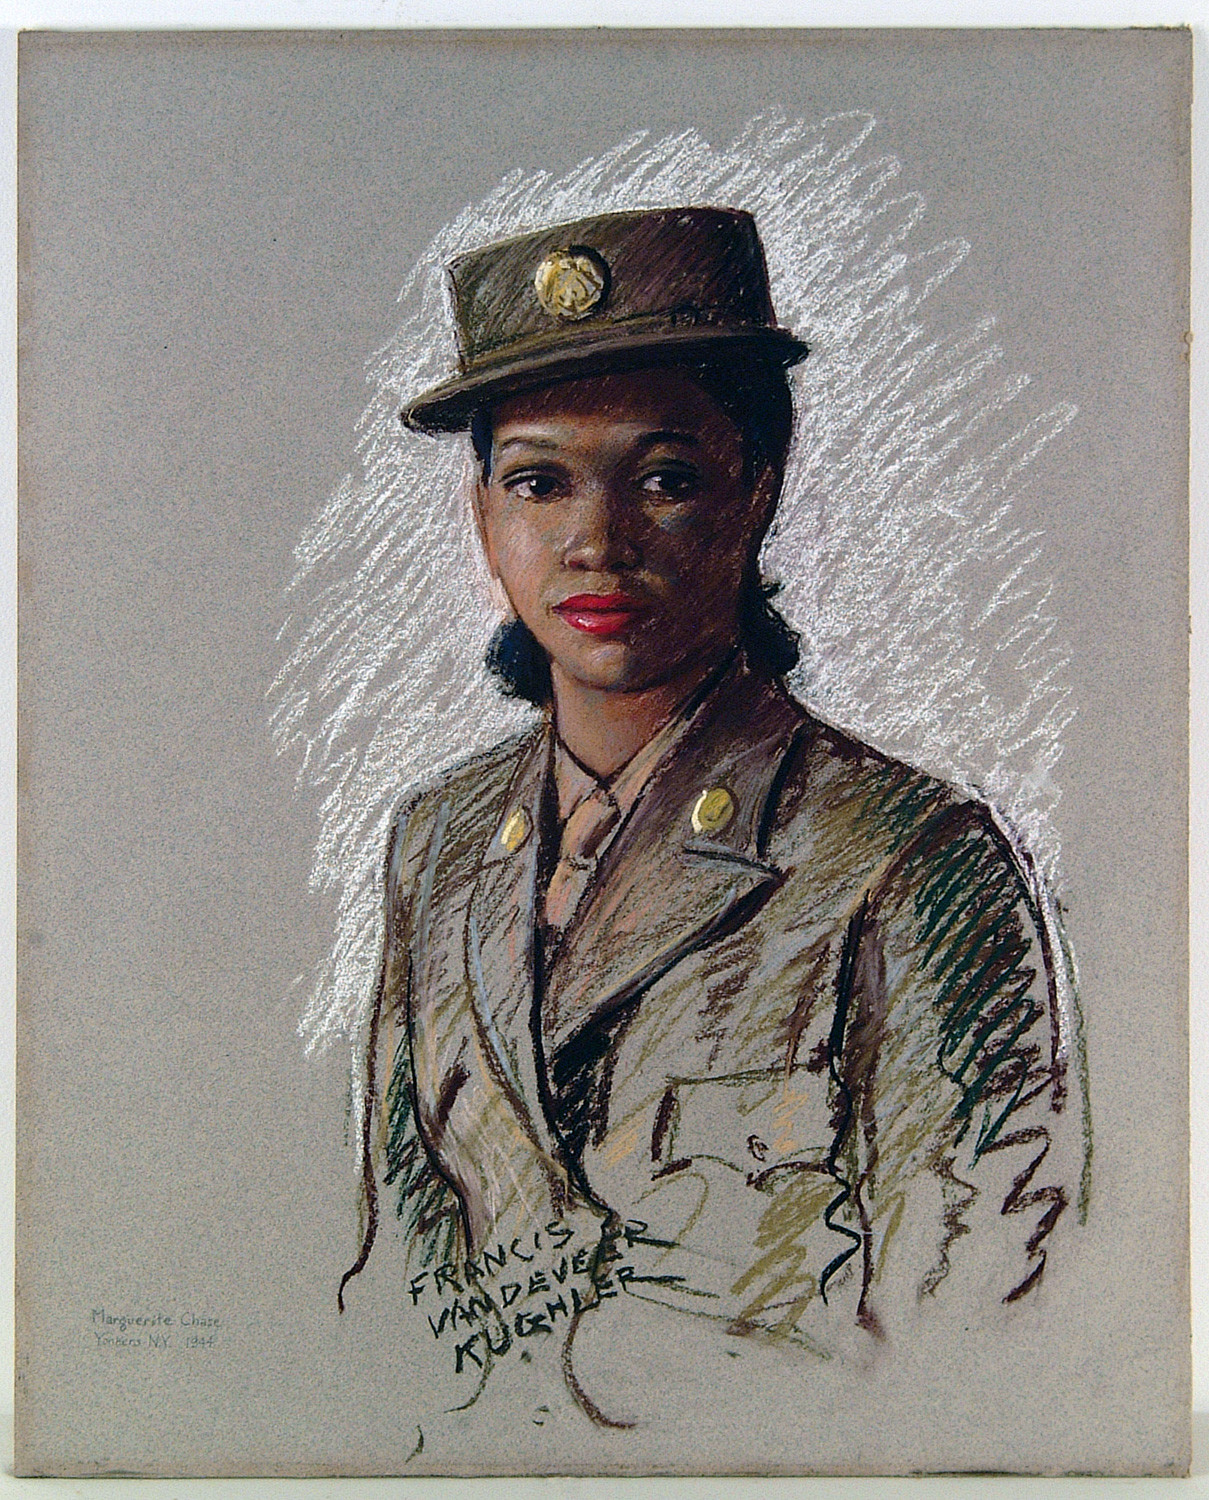 The Women's Army Corps sent artist Francis Vandeveer Kughler to draw portraits of women in the armed forces during World War II, and one of the subjects happened to be Marguerite Chase, a woman from Yonkers who served in the Army during the war. Kughler's drawing of Chase is just one of many portraits featured at the Hudson River Museum's 'Figural Works from the Collection' display that runs through Jan. 21.